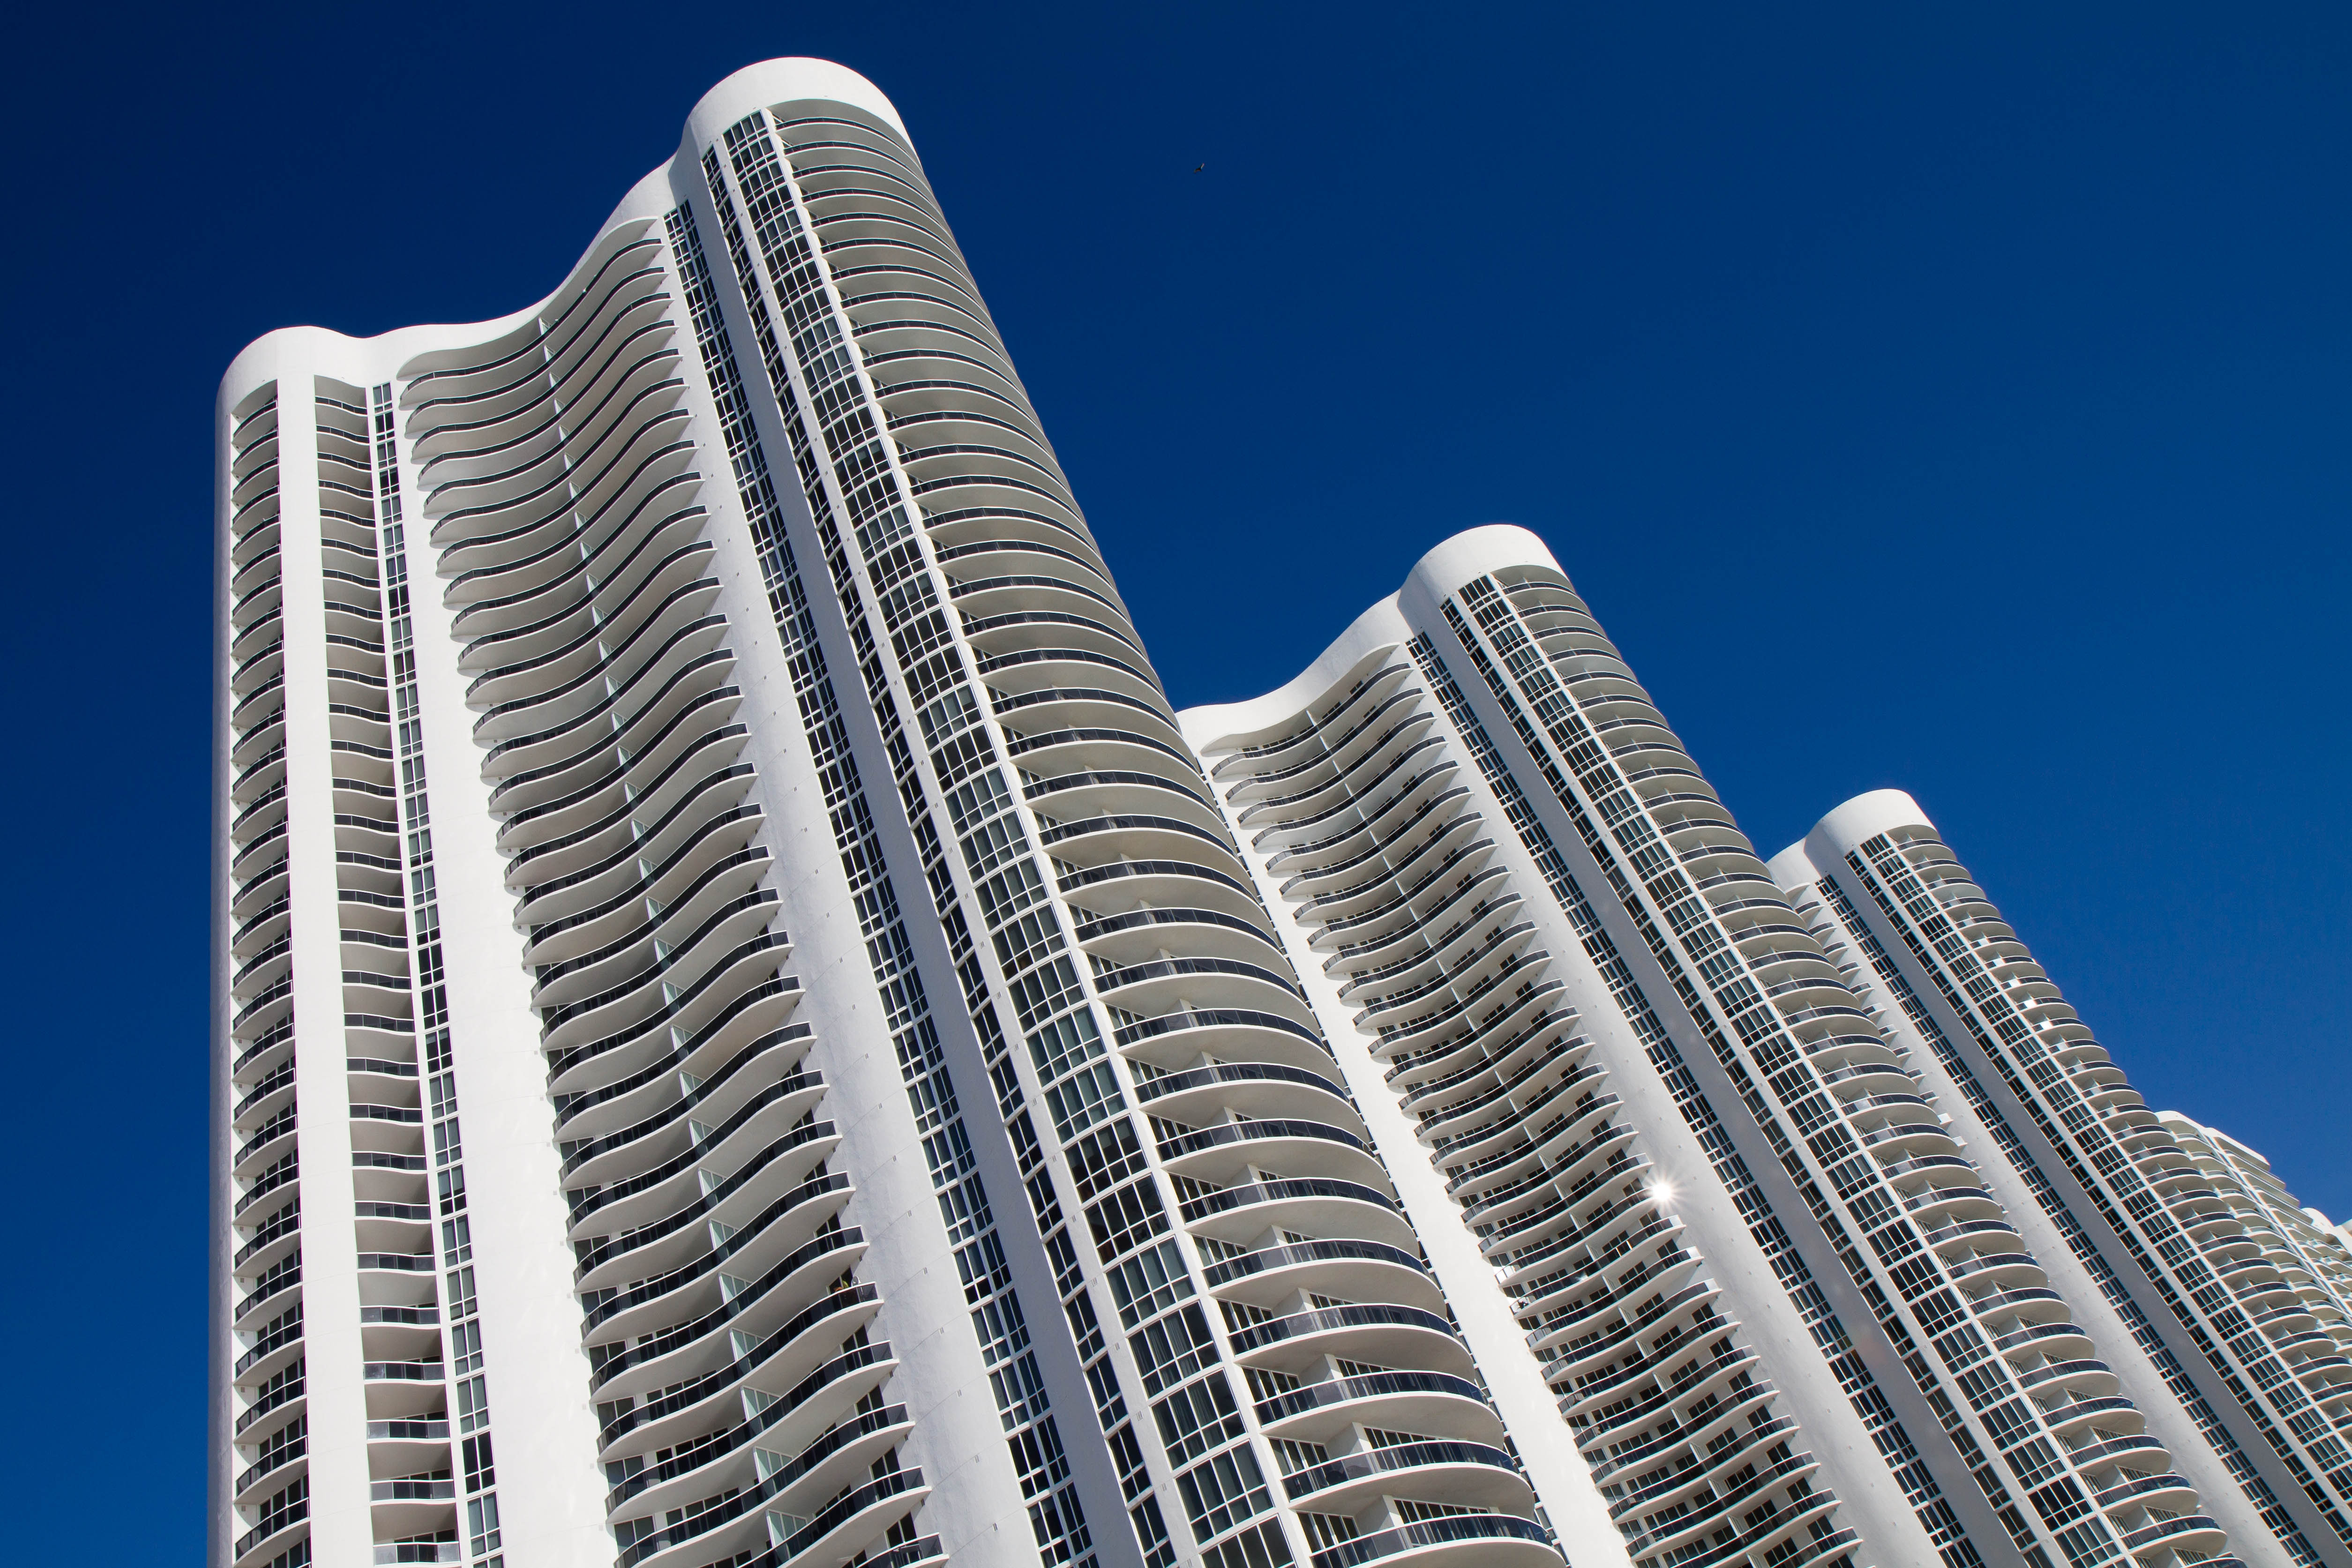 Trump branded towers on Sunny Isles Beach